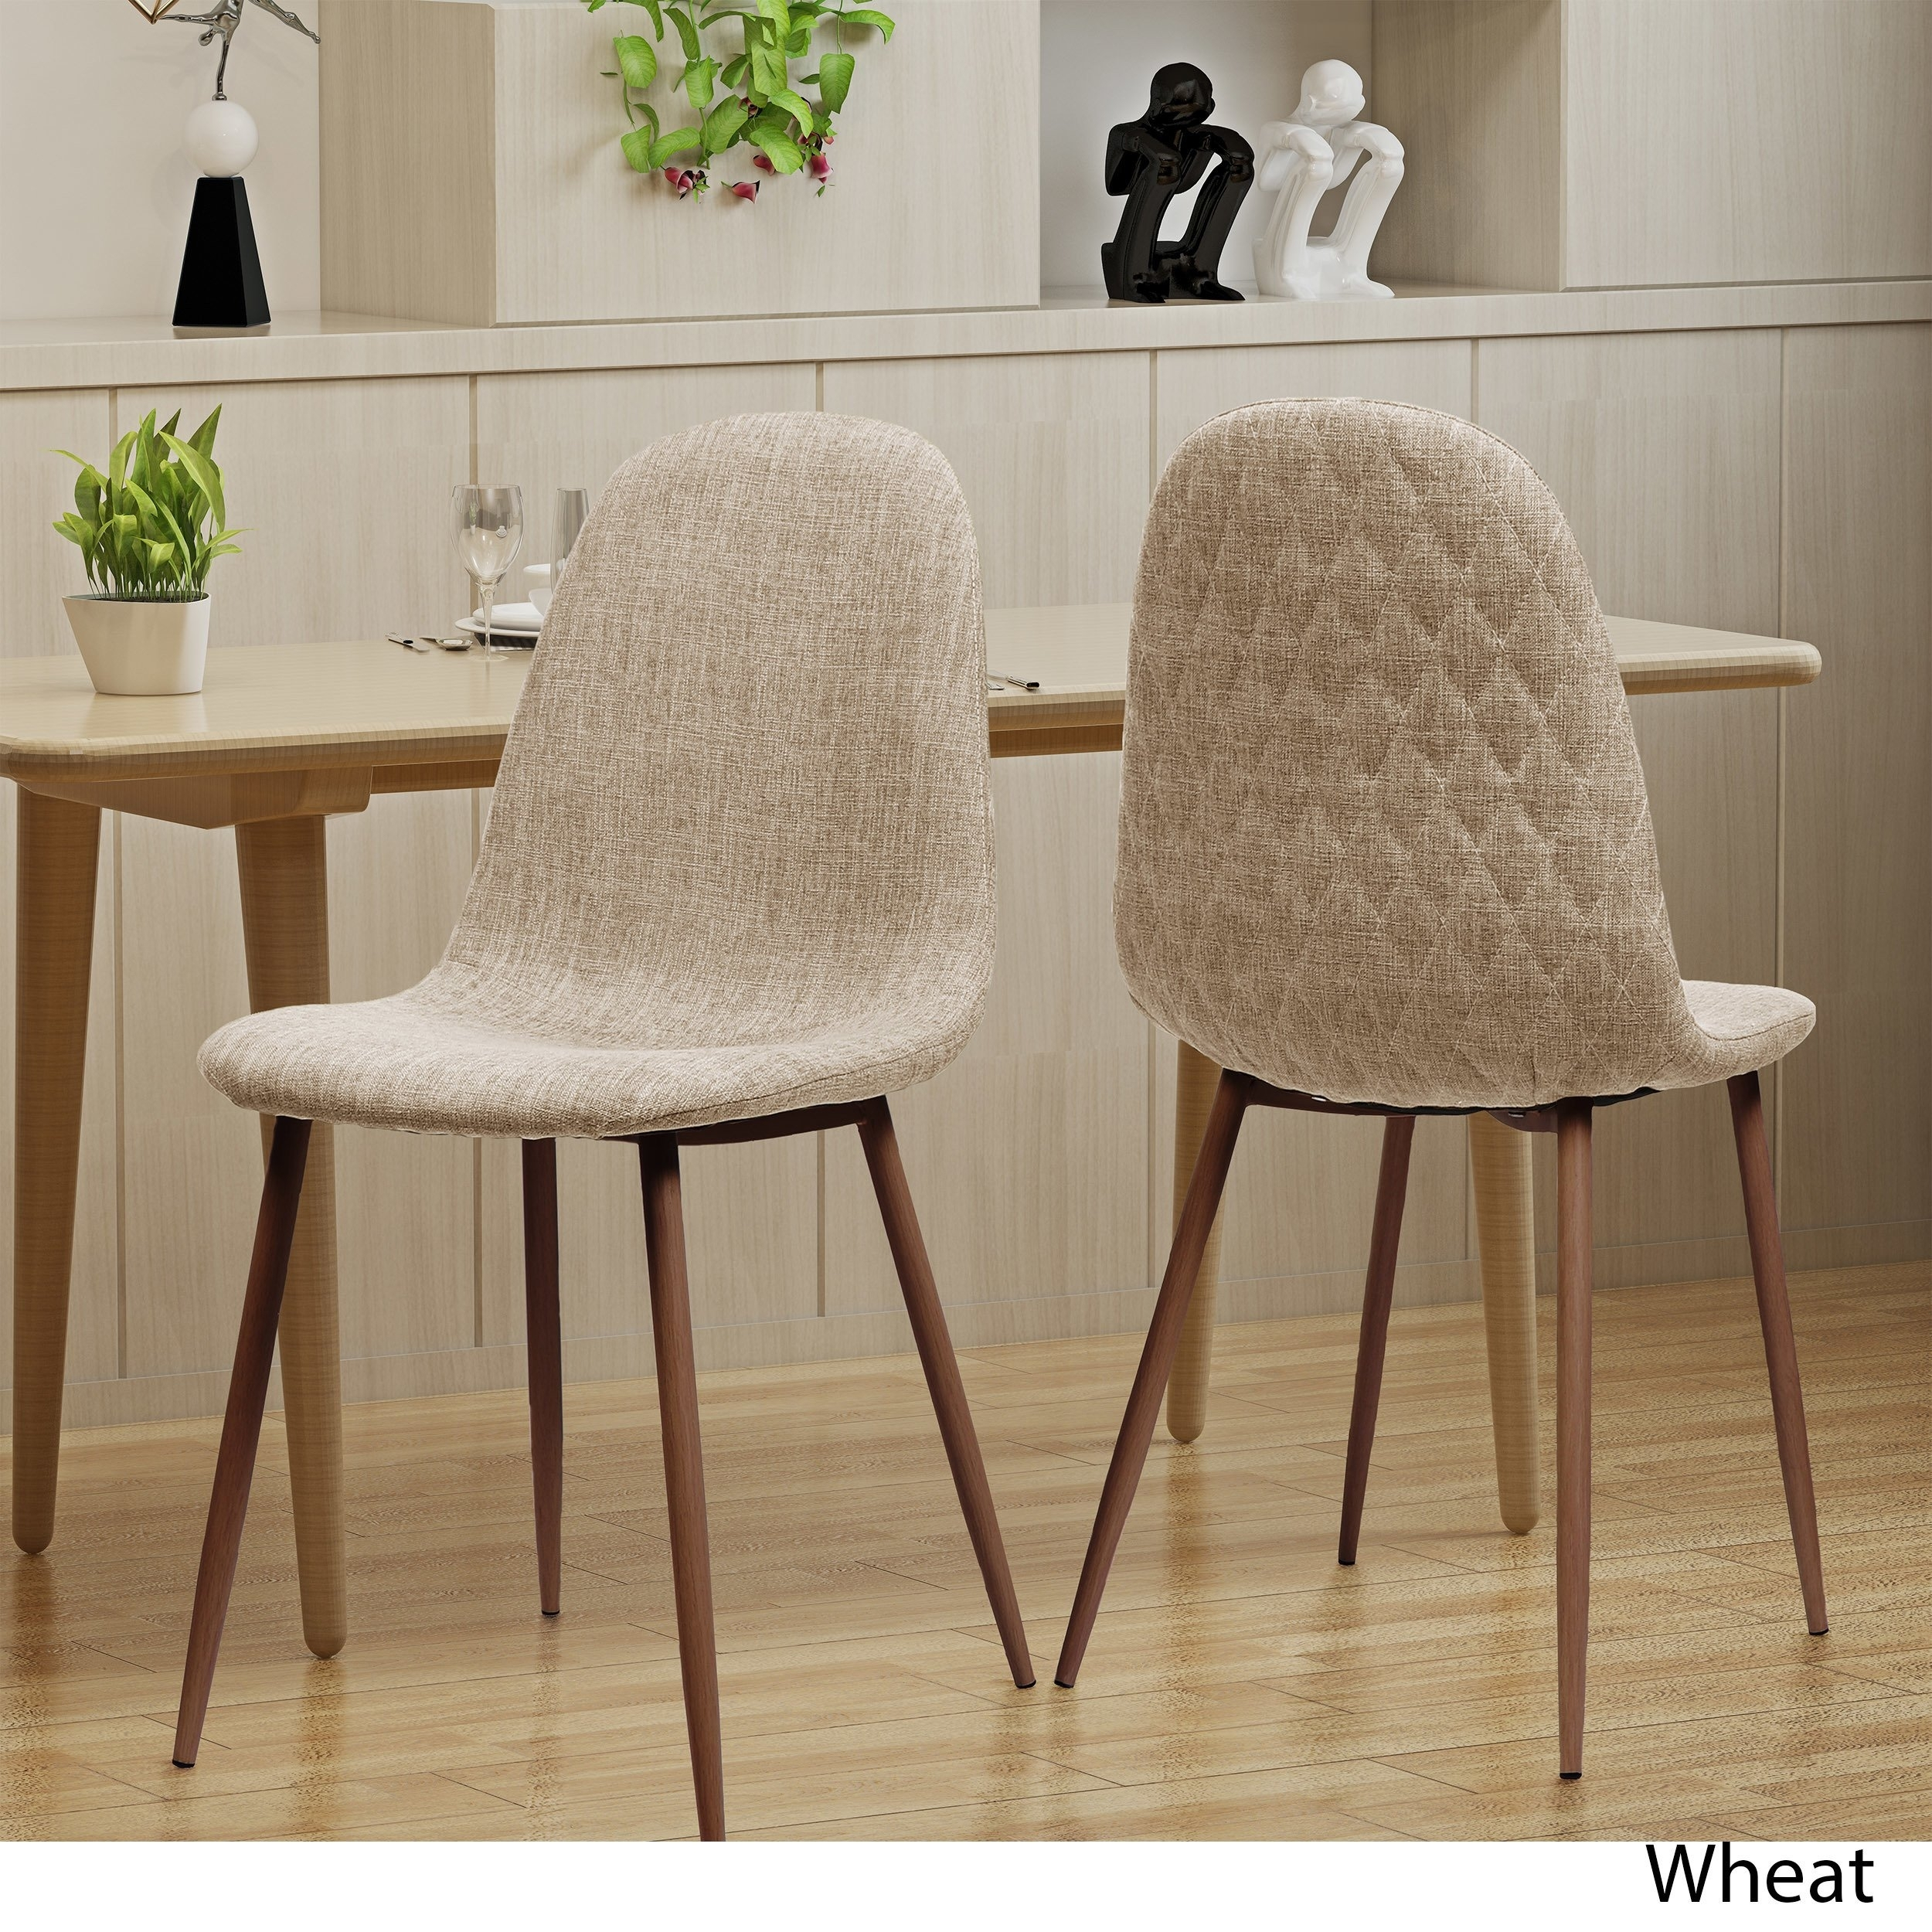 Shop Caden Mid Century Fabric Dining Chair (Set Of 2)Christopher Pertaining To Most Current Caden 5 Piece Round Dining Sets With Upholstered Side Chairs (Photo 8 of 20)